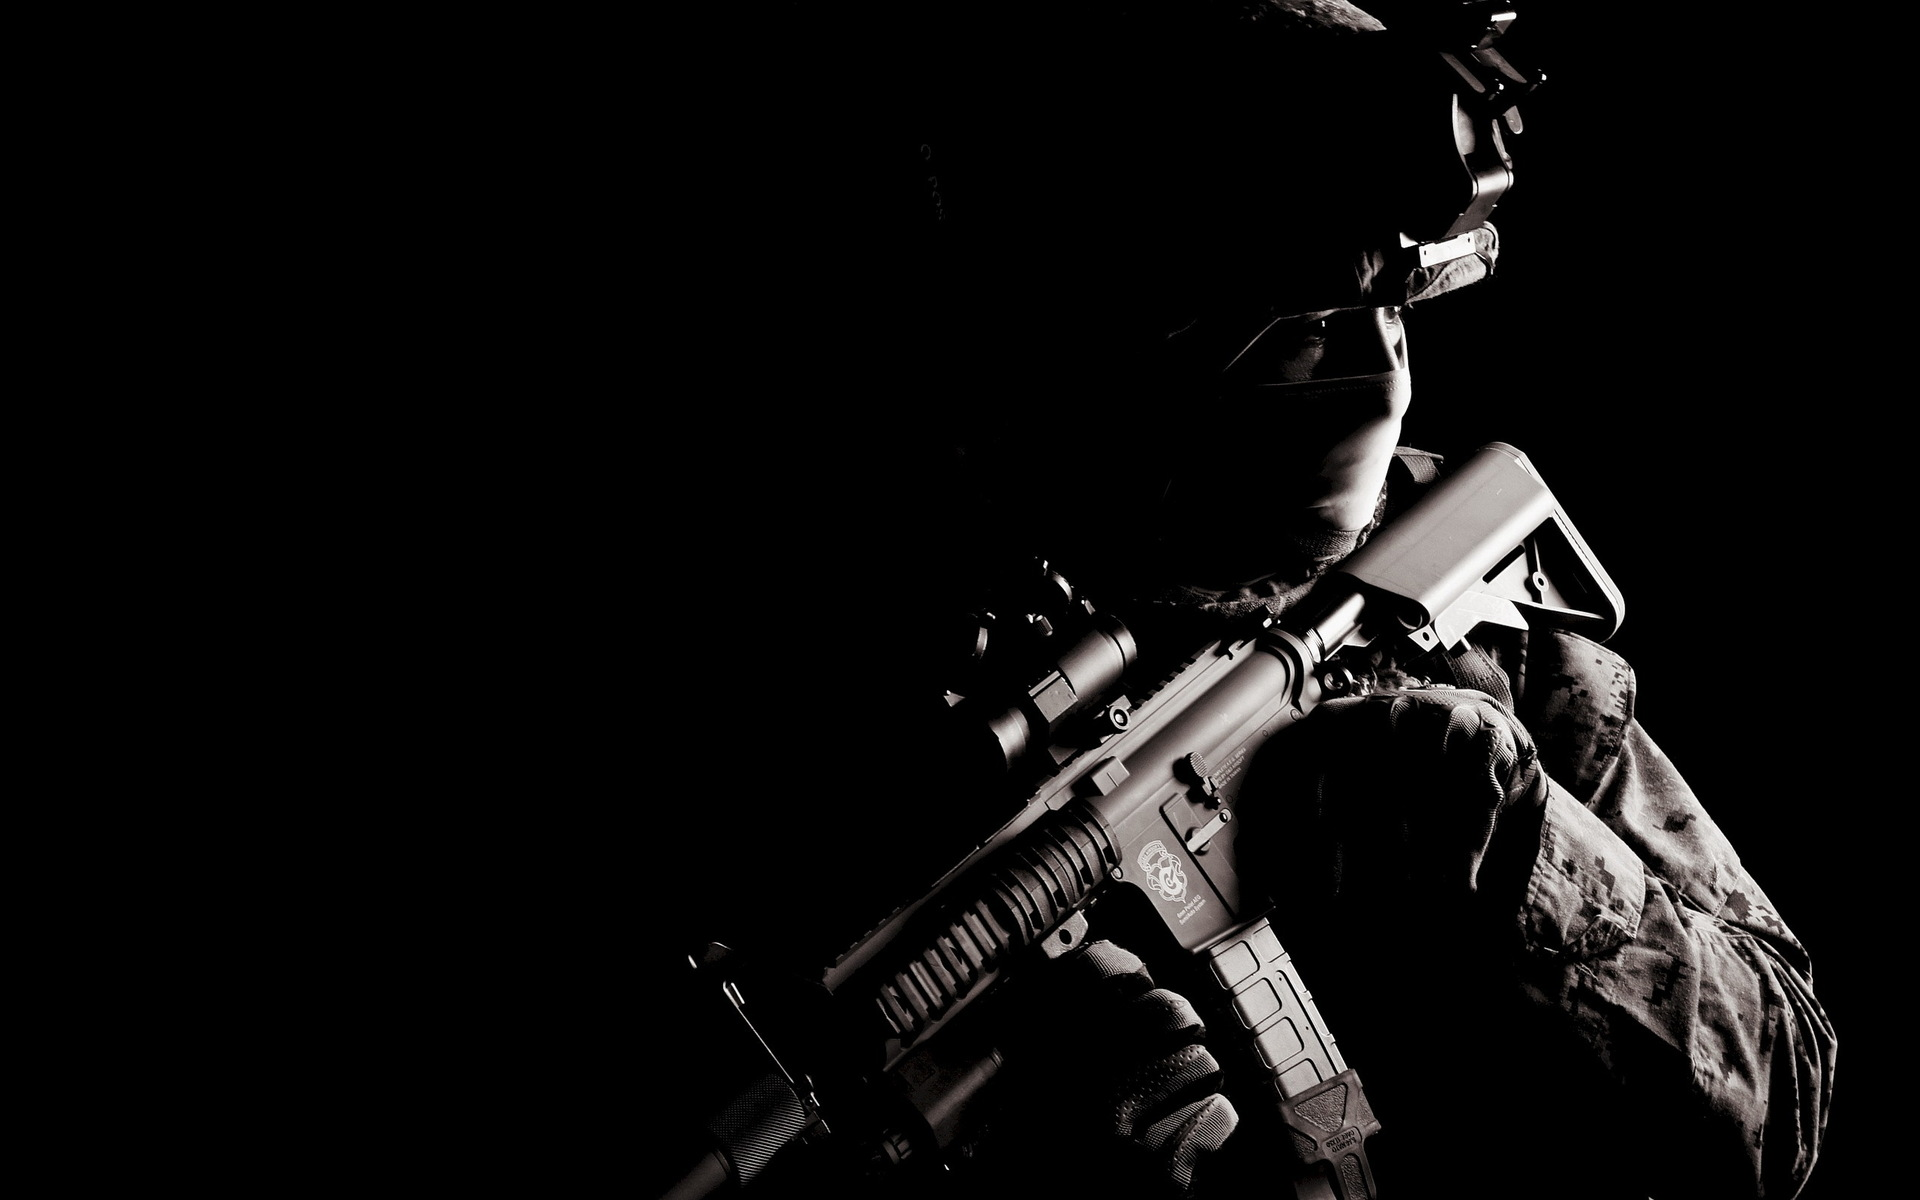 Download the following Navy Seal Wallpaper 11860 by clicking the 1920x1200